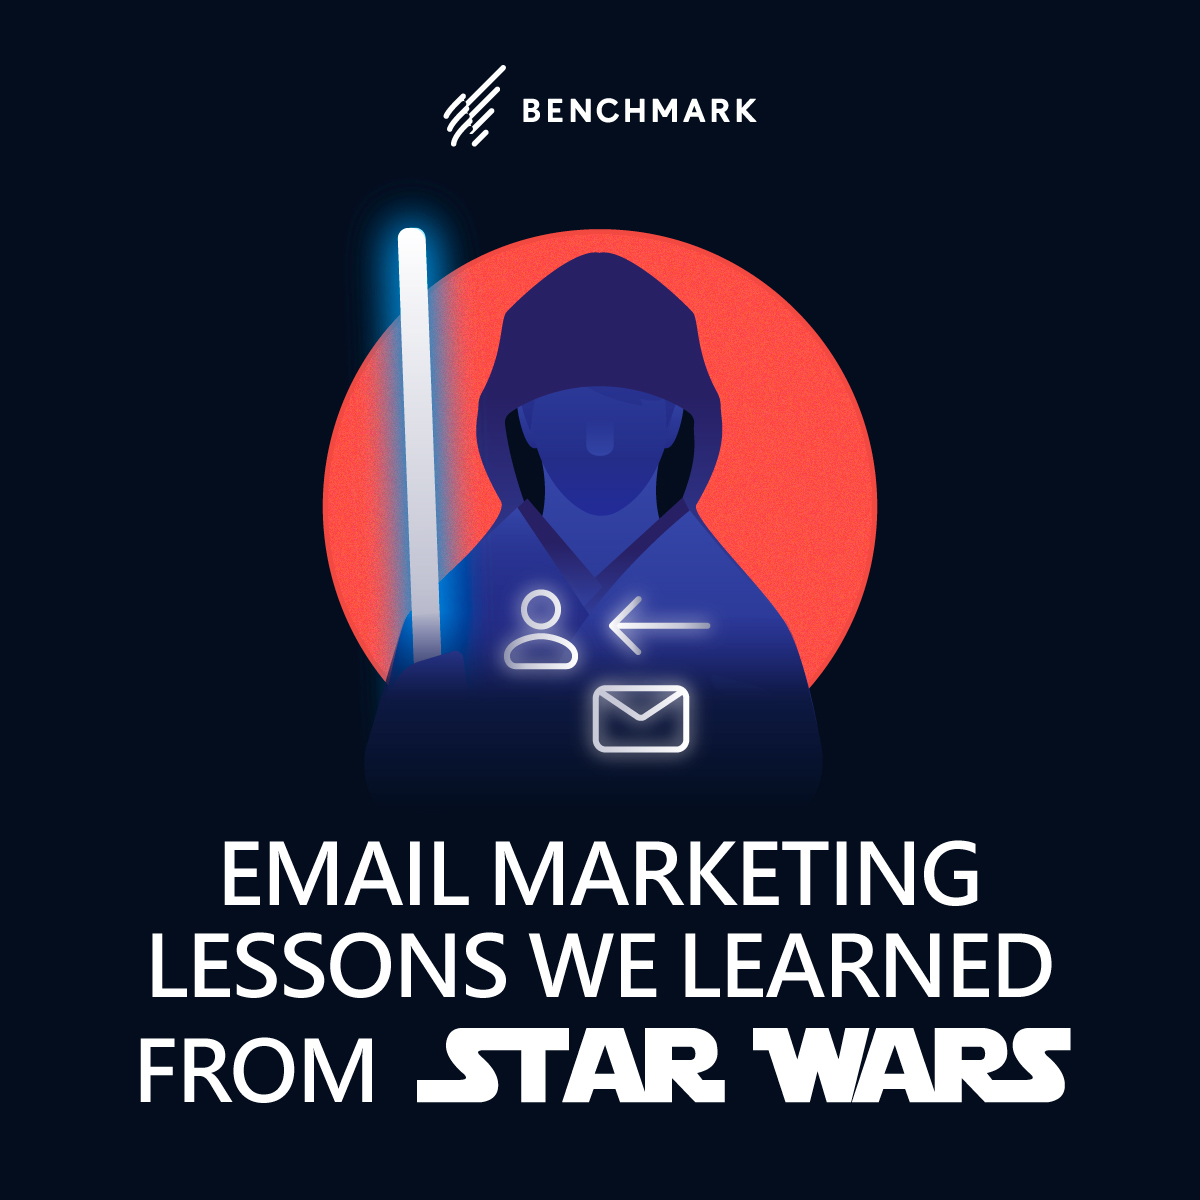 Email Marketing Lessons we Learned from Star Wars